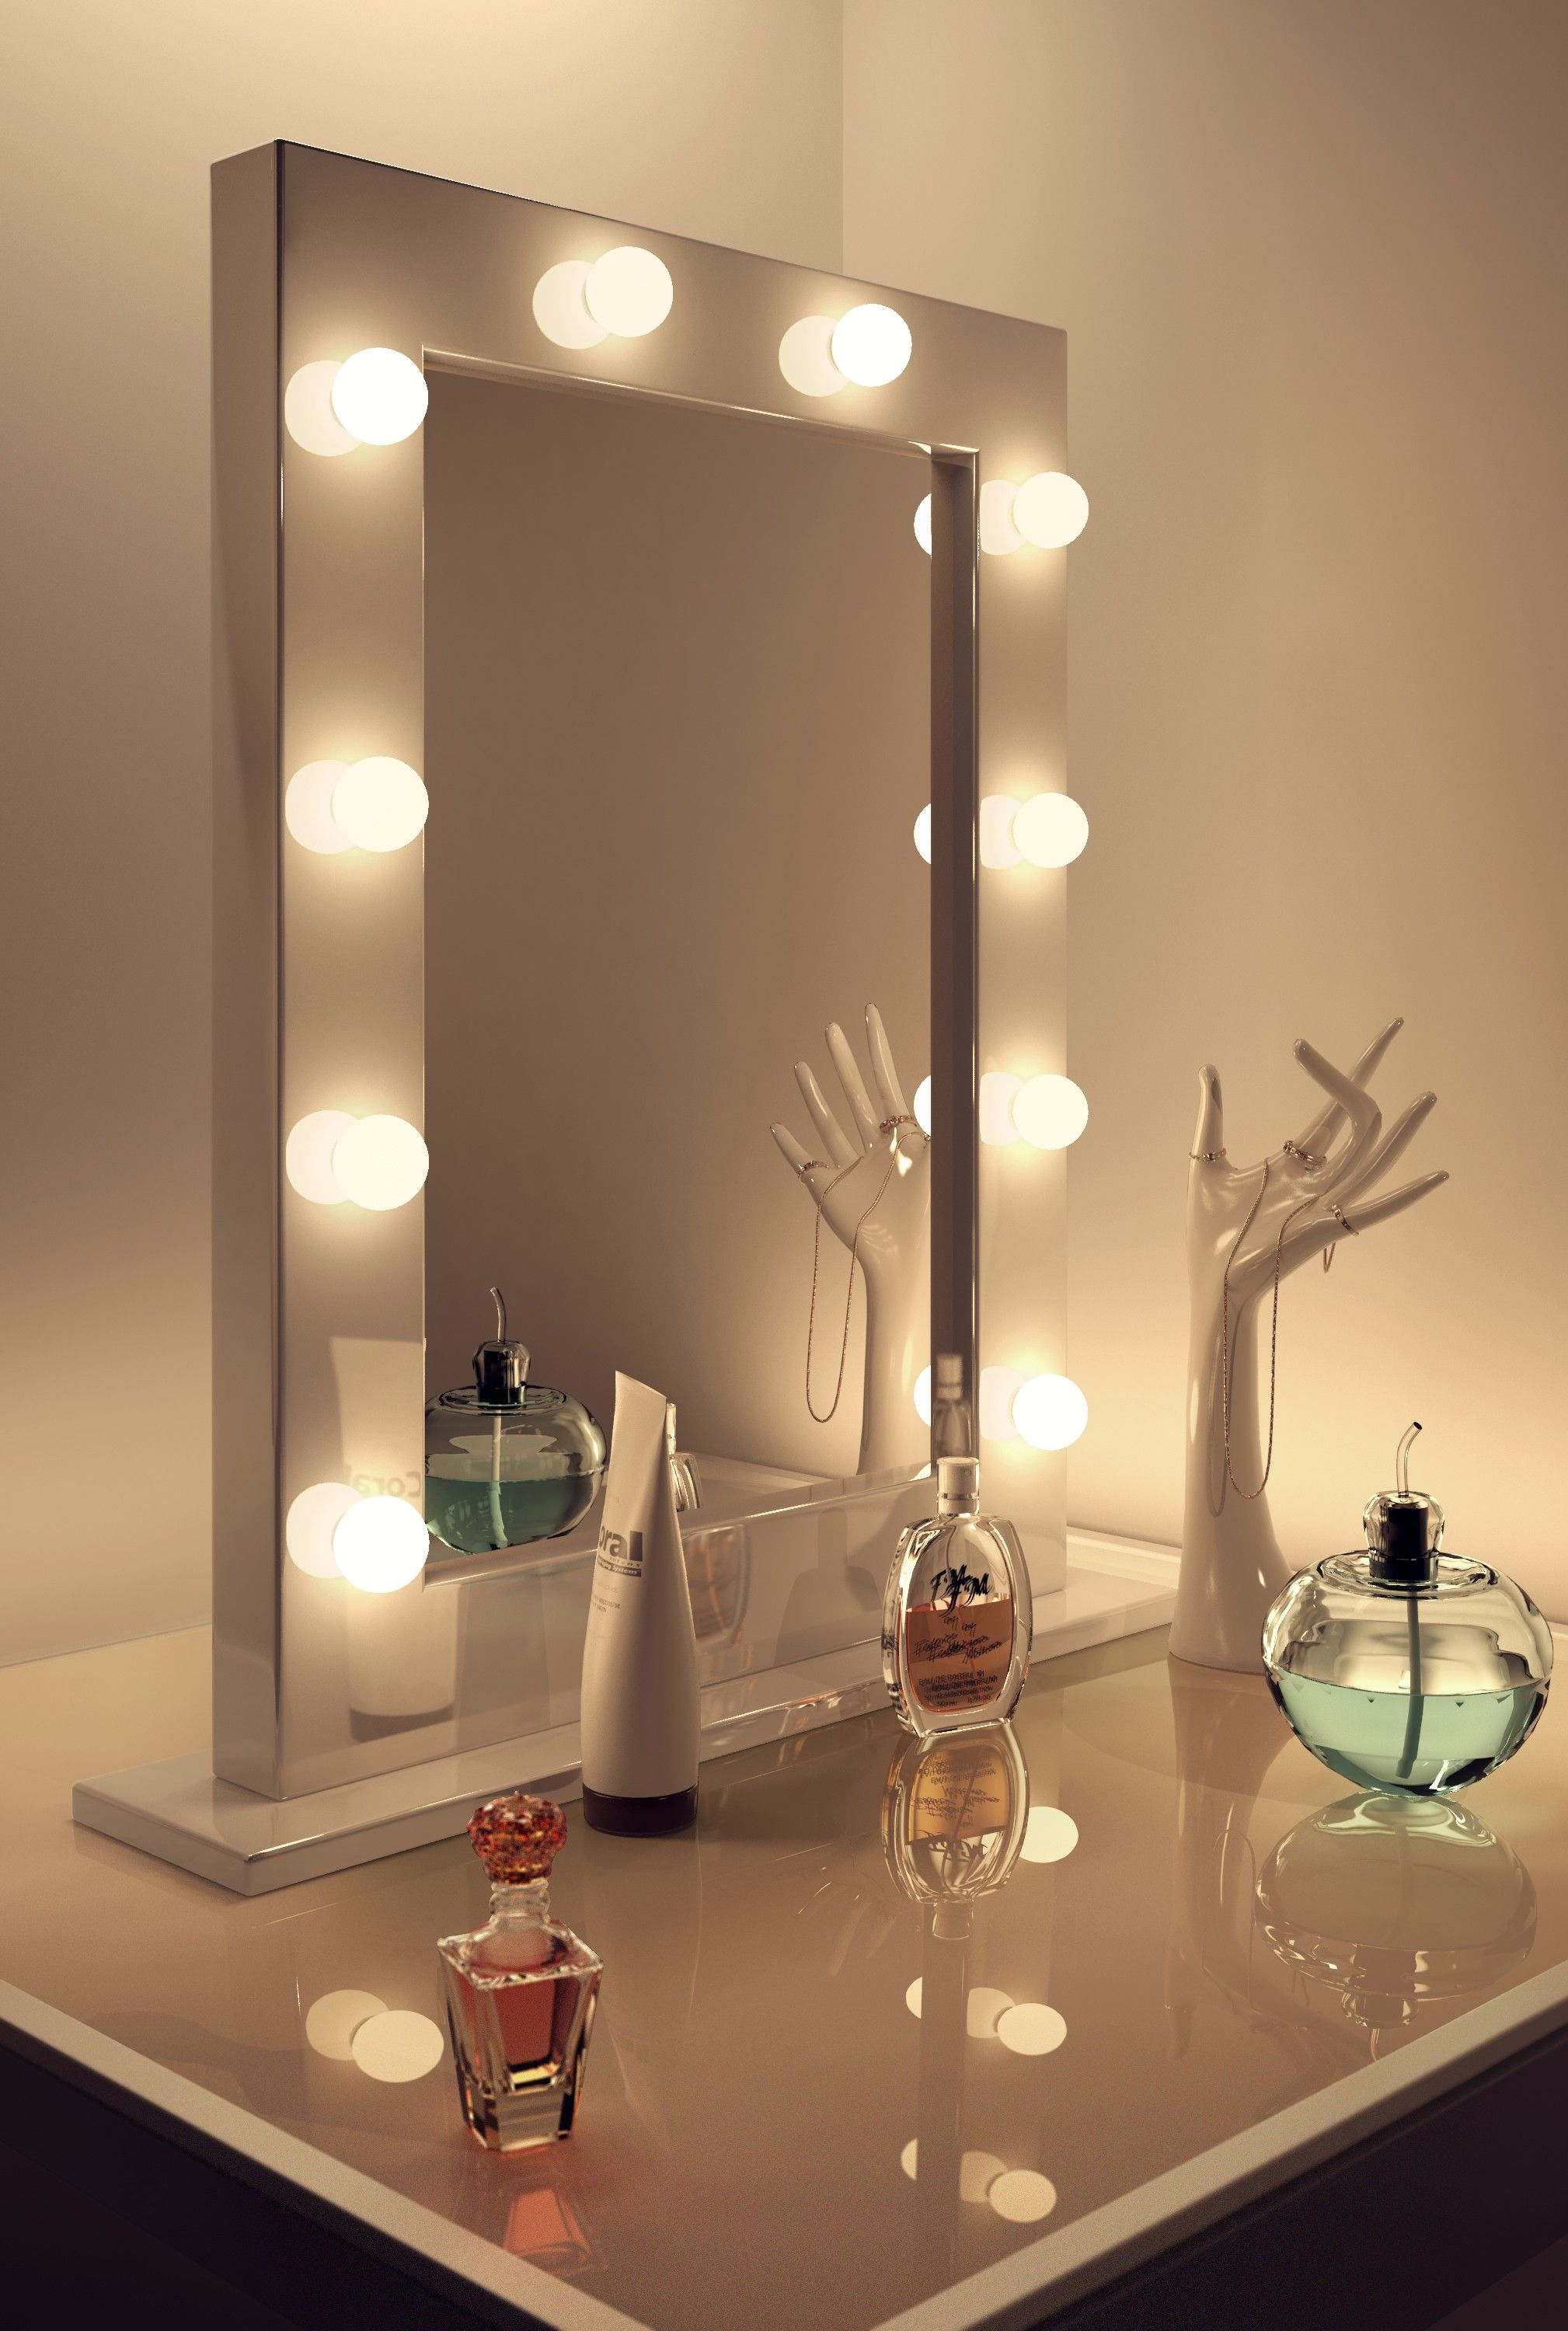 Best 17 Diy Vanity Mirror Ideas To Make Your Room More 640 x 480